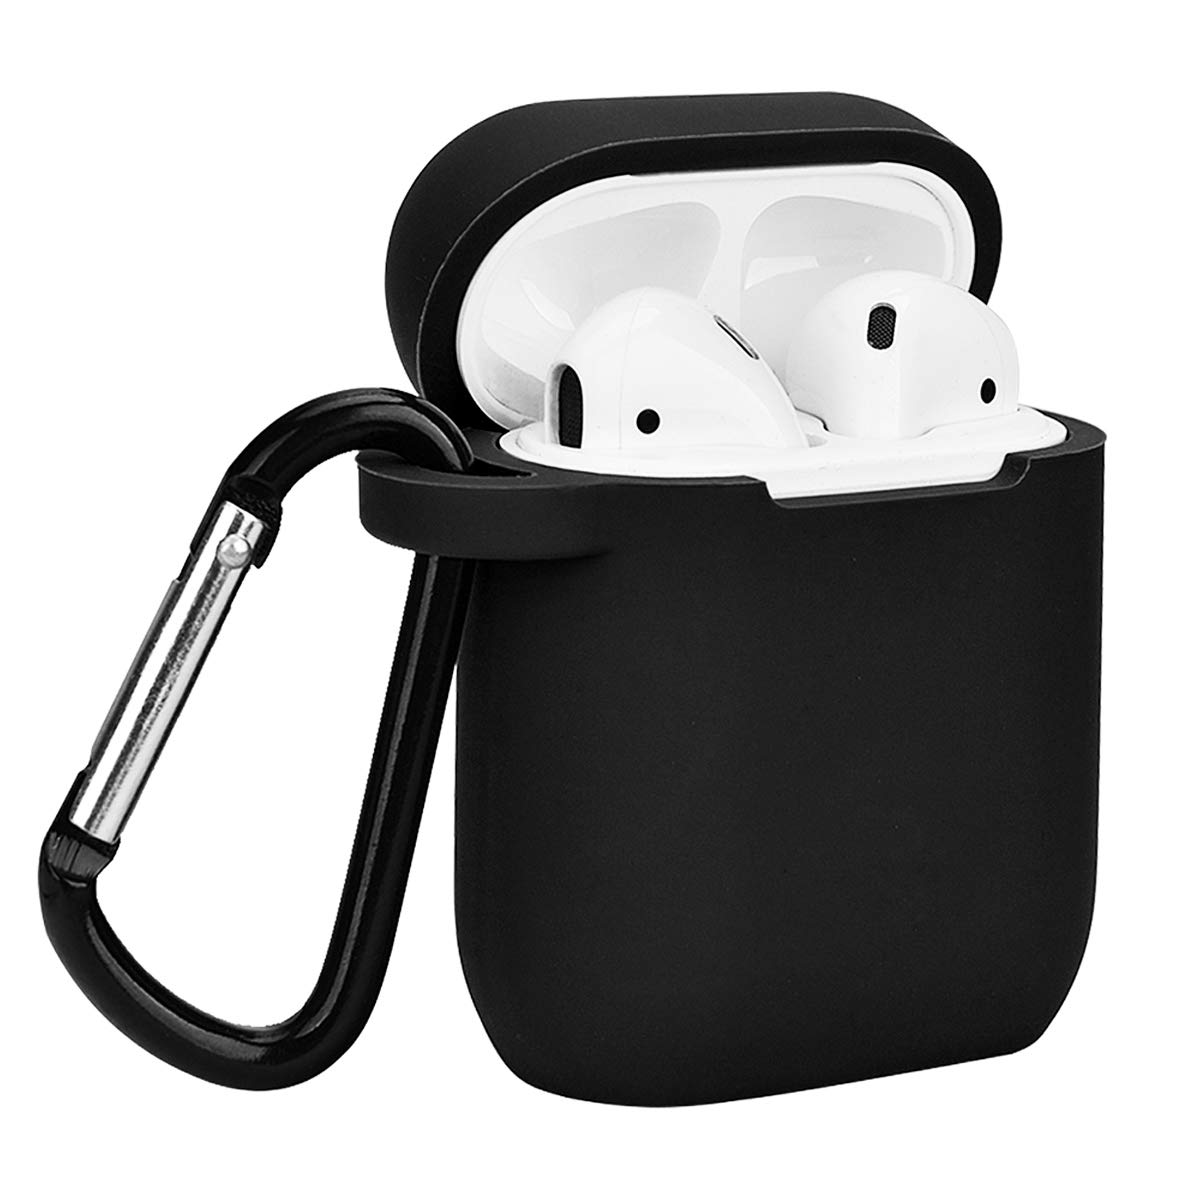 Airpods Case, Coffea AirPods Accessories Shockproof Case Cover Portable & Protective Silicone Skin Cover Case for Apple Airpods Charging Case (Black)